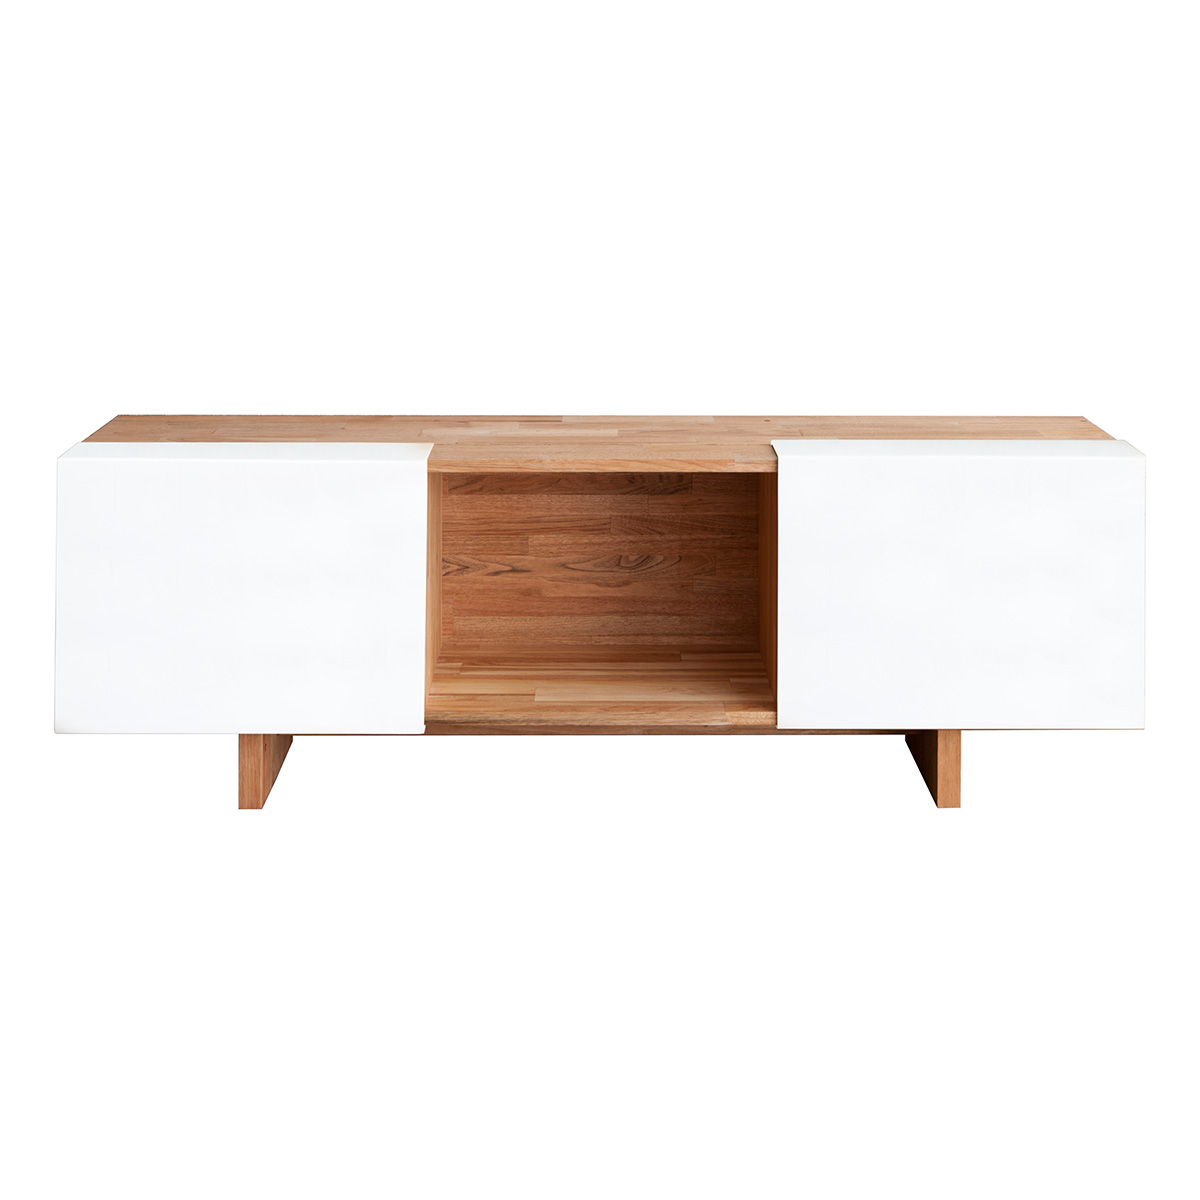 Lax Series Platform Bed lax series entertainment shelf with base lax.58.13.14.wc